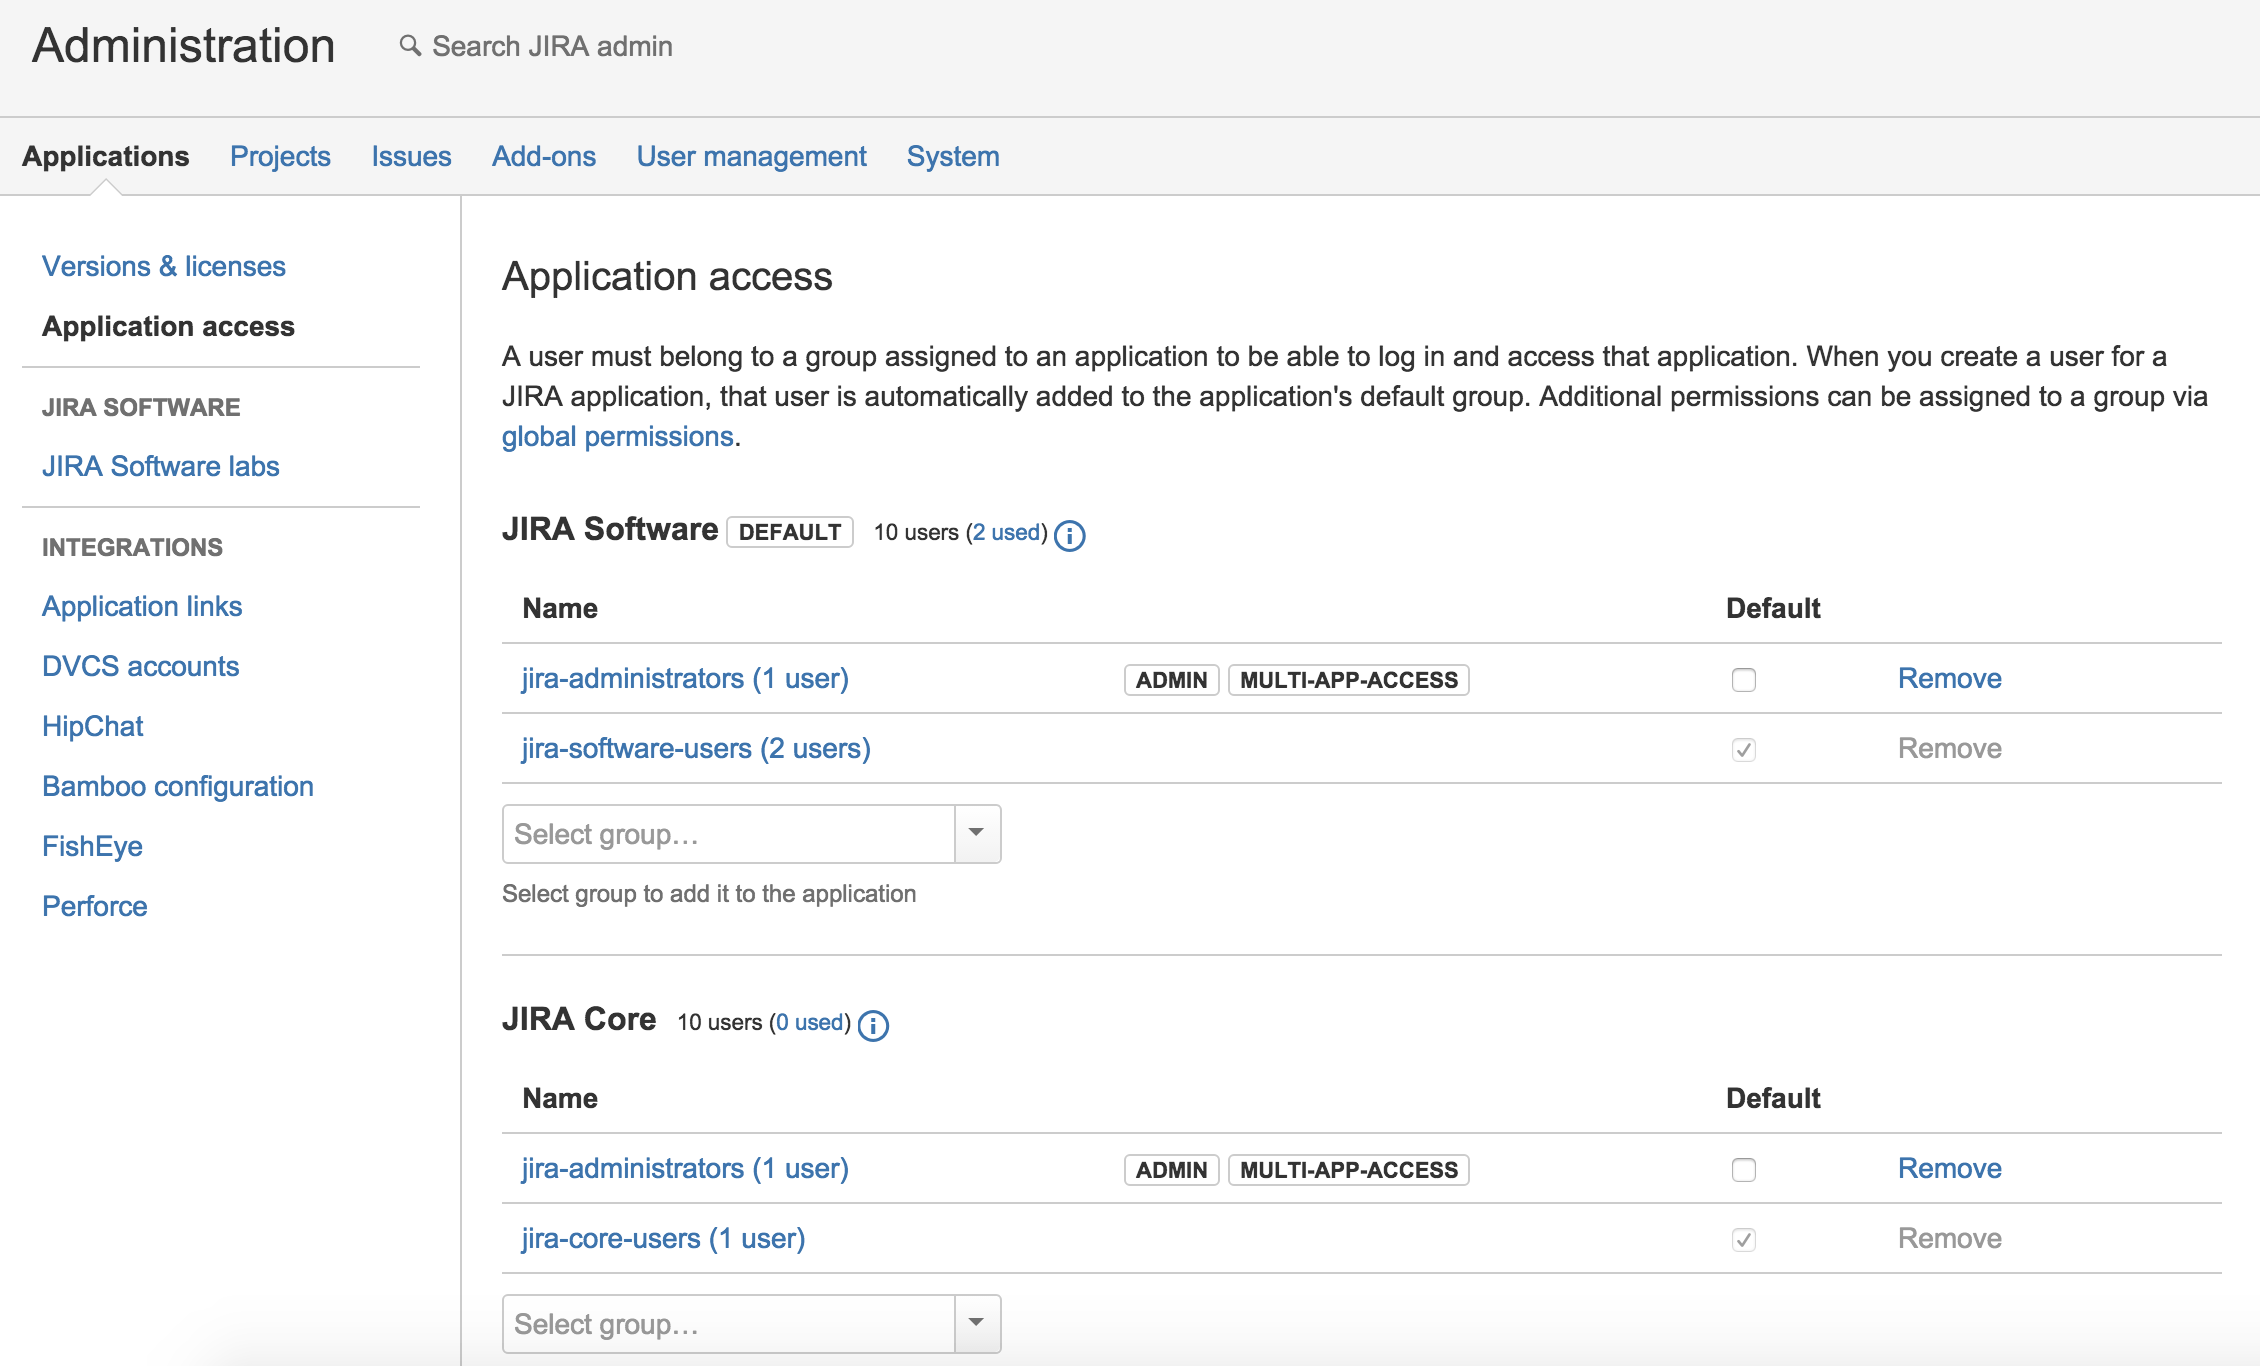 JIRA Application Access